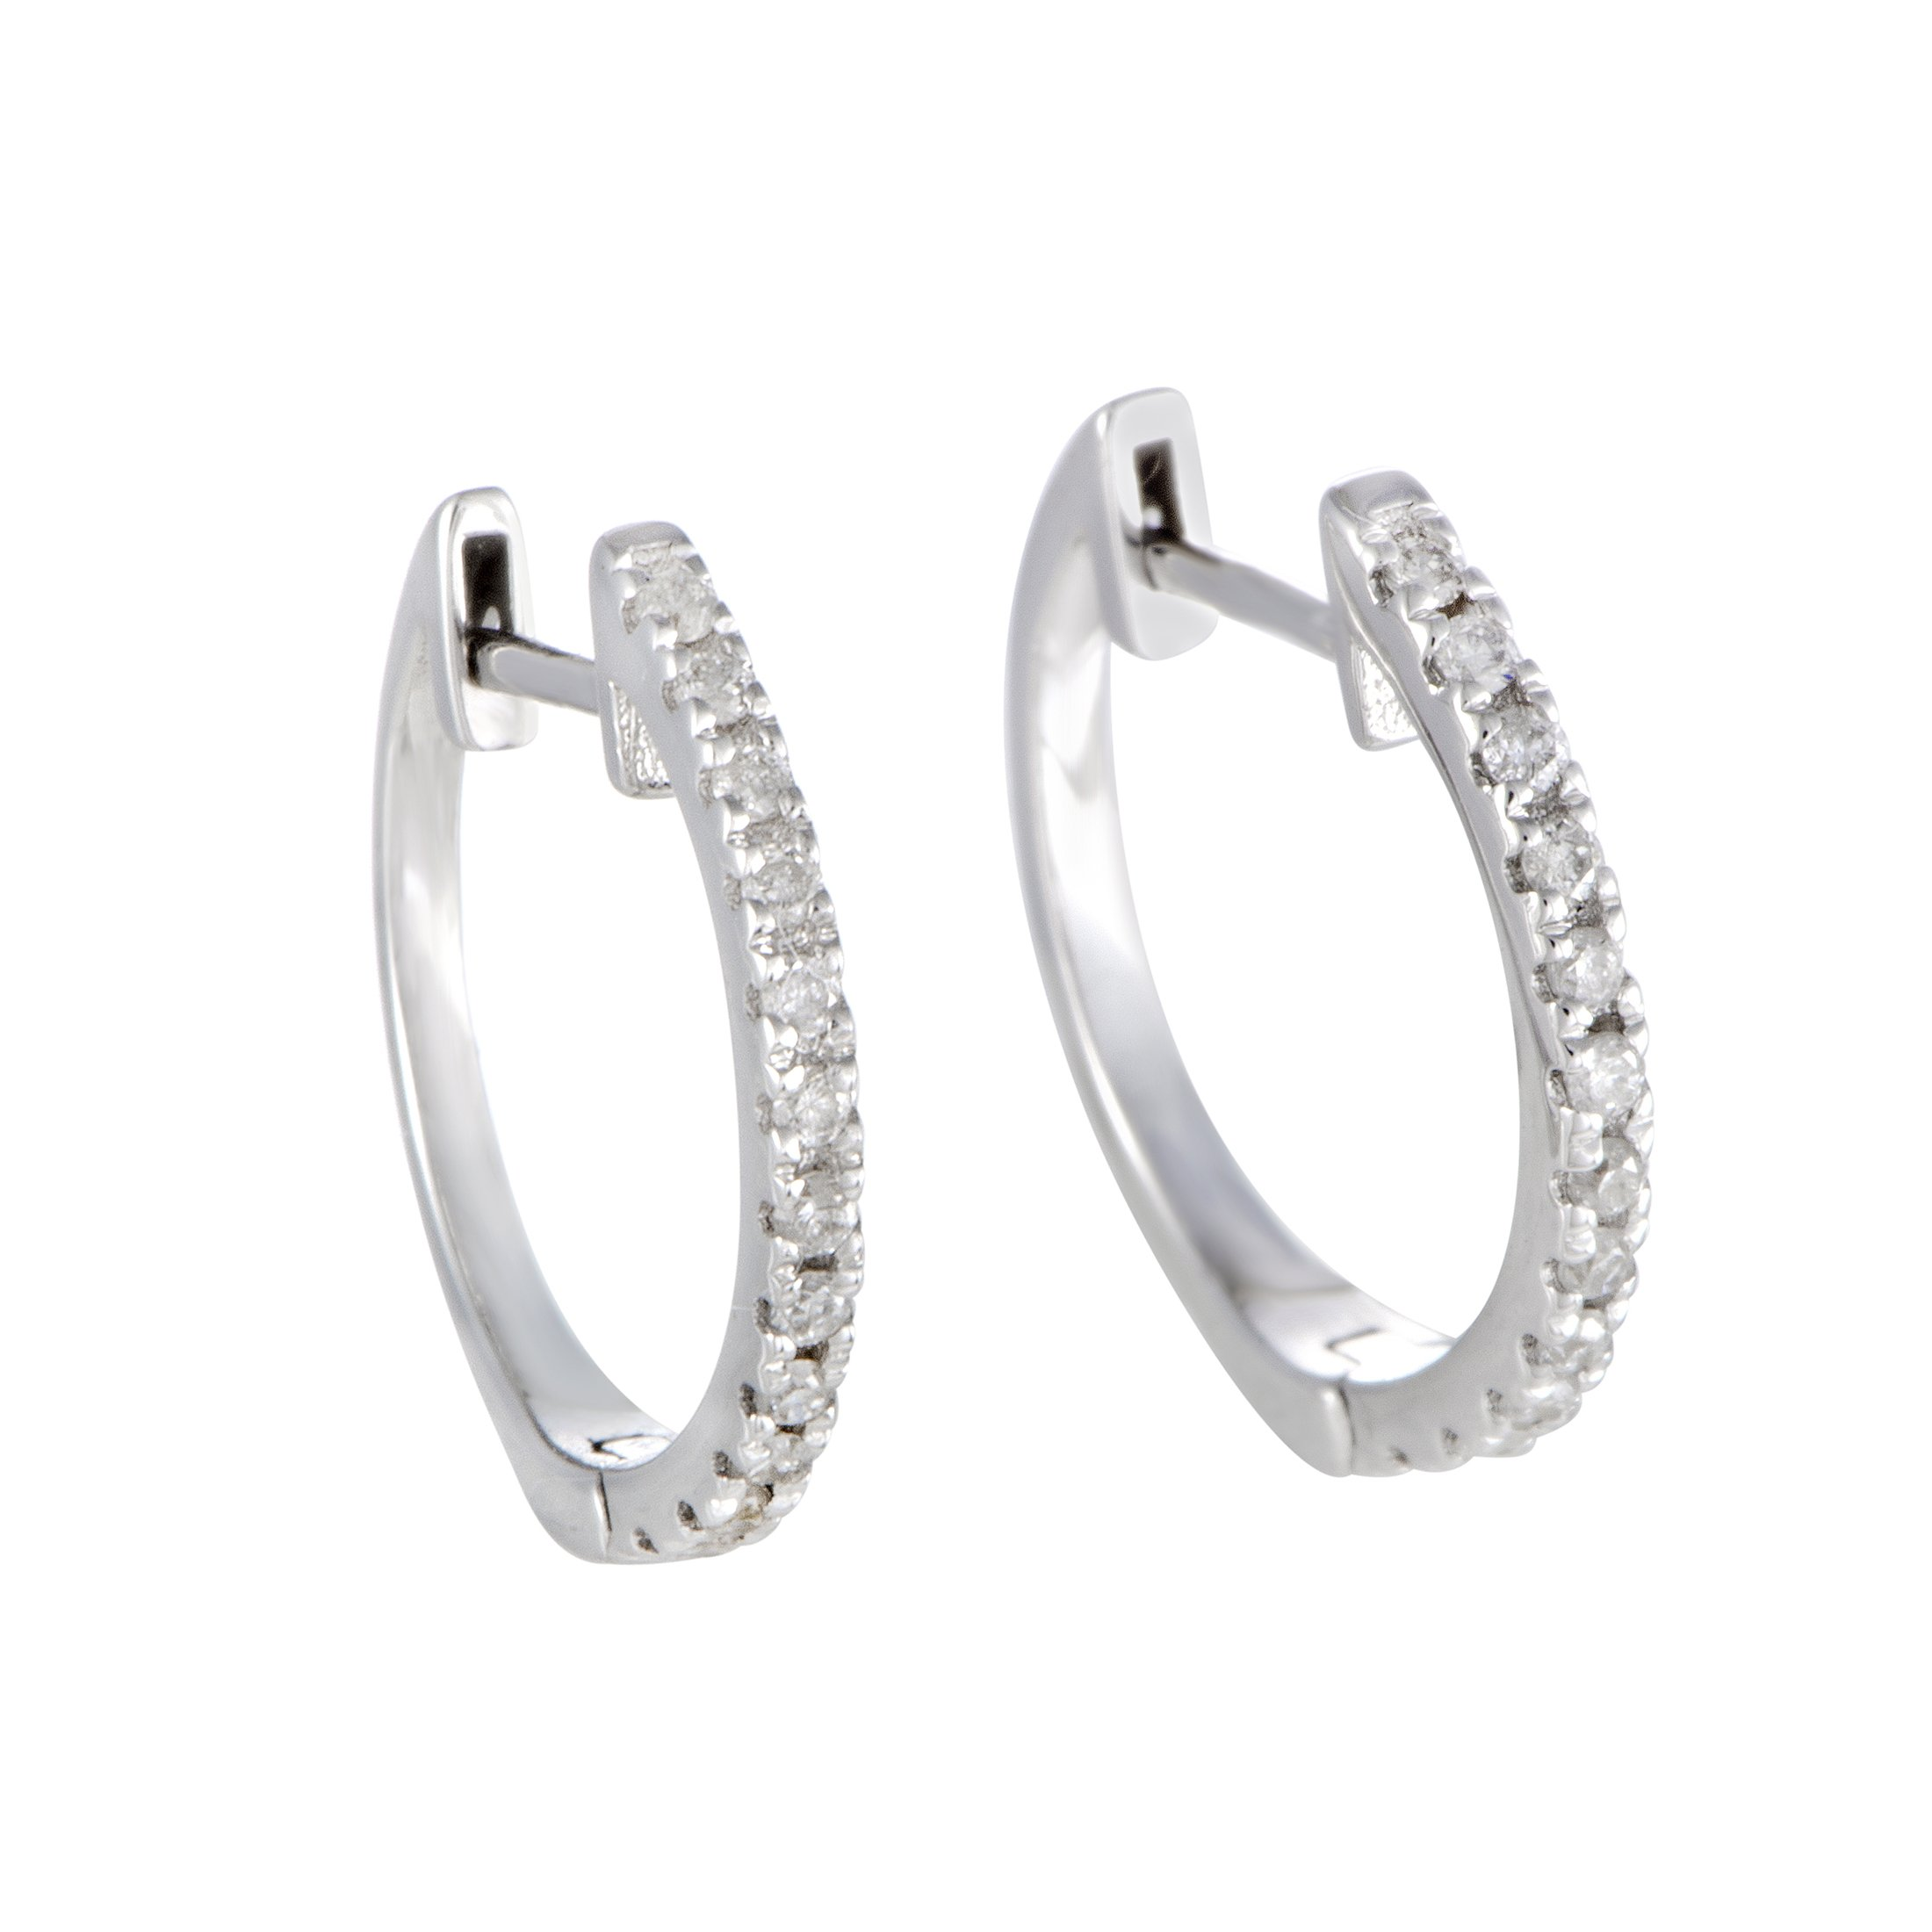 Stunning 0.5'' Diamond Hoop Earrings in 14K White Gold; 0.20 Carats of White Diamonds (G Color, SI1-SI2 Clarity)